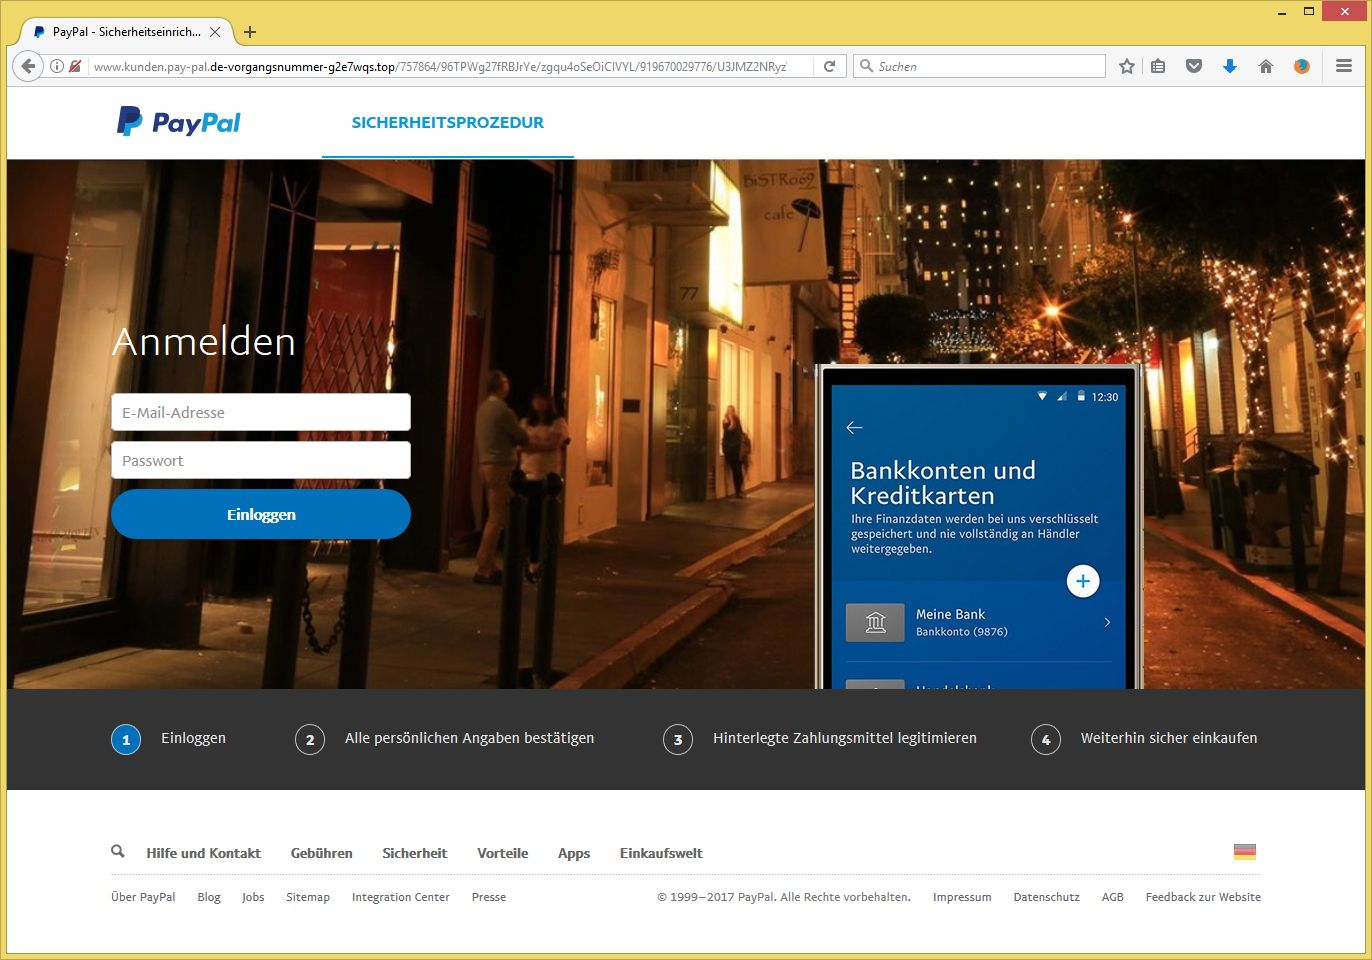 paypal kundenservice email adresse